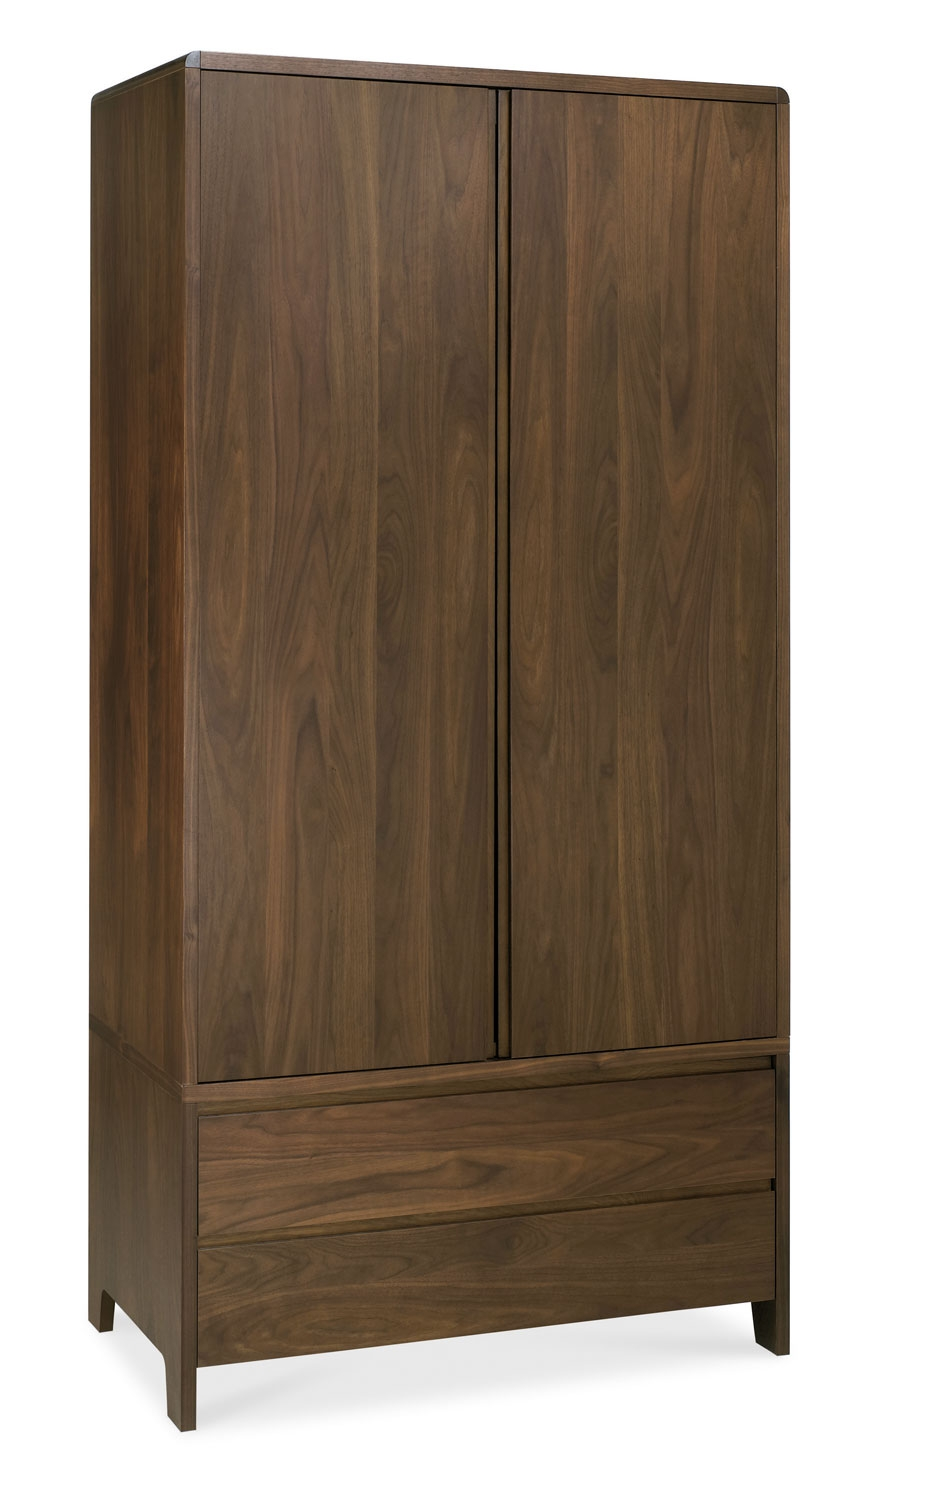 Capri walnut double wardrobe review compare prices buy for American walnut bedroom furniture uk